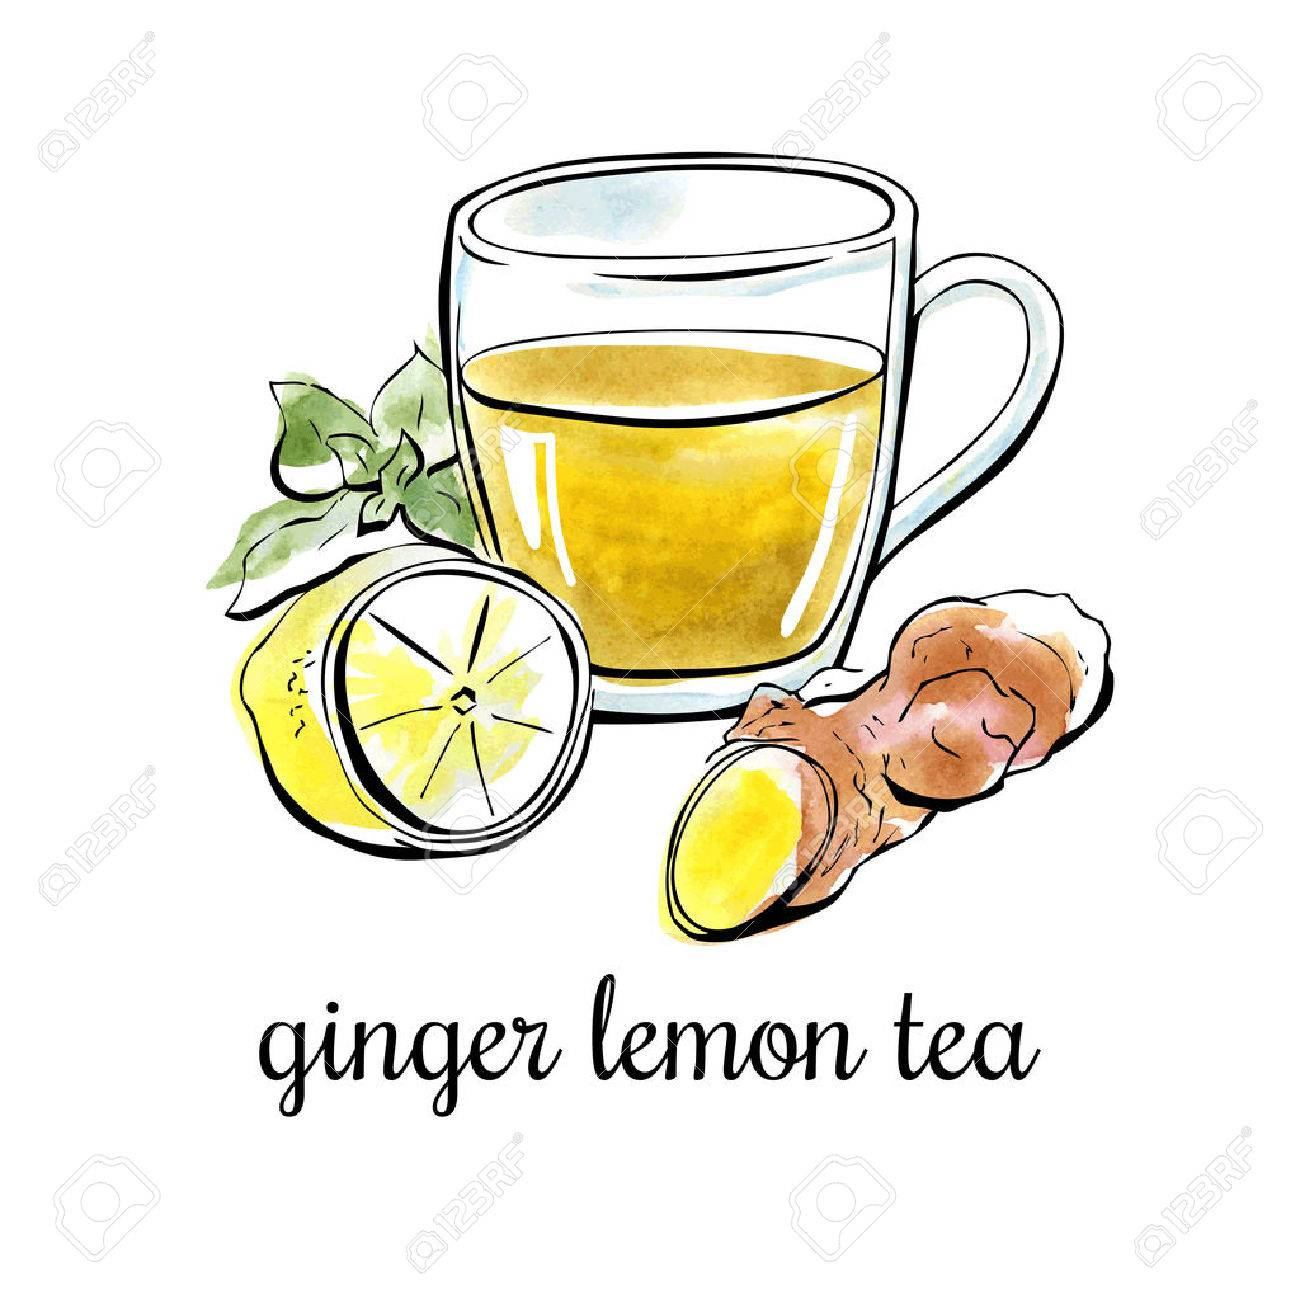 Vector hand drawn illustration with ginger lemon tea. Black outline and bright watercolor stains on the background. Isolated on white. - 62226935